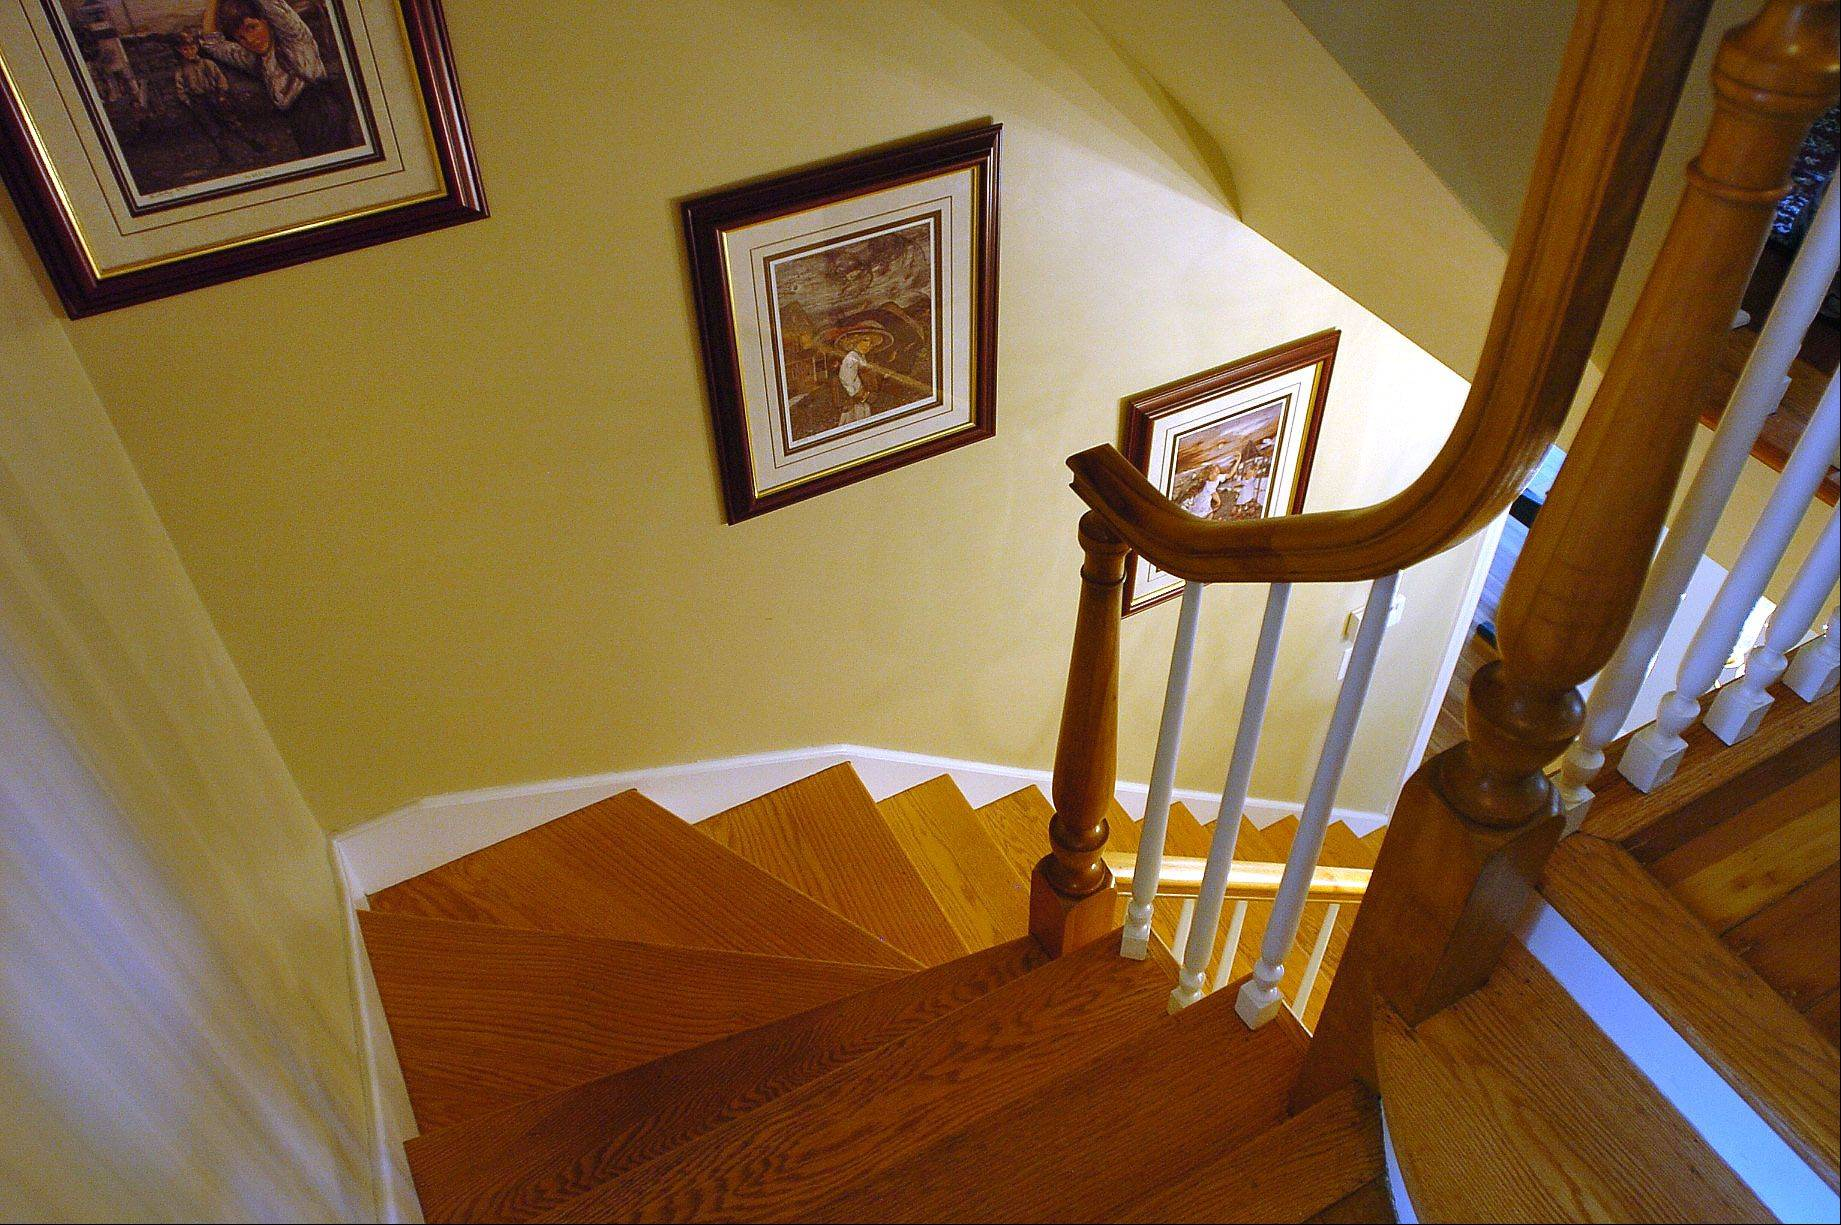 This staircase was probably built in the Martini/Kessler home in the 1940s.